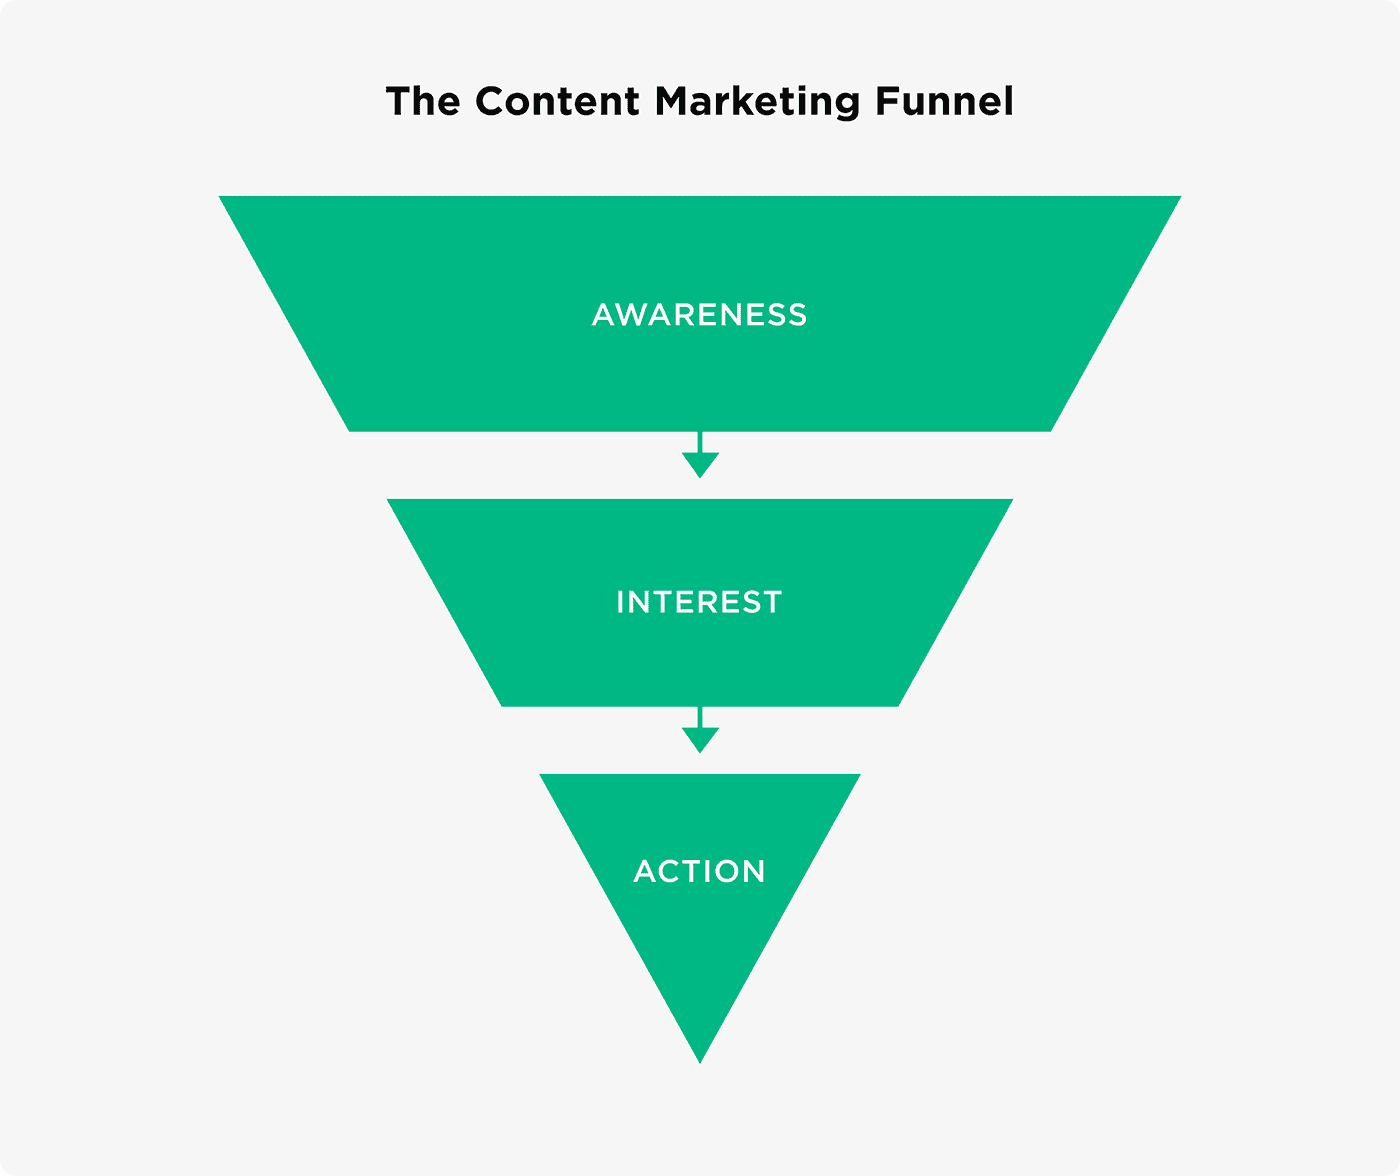 The content marketing funnel